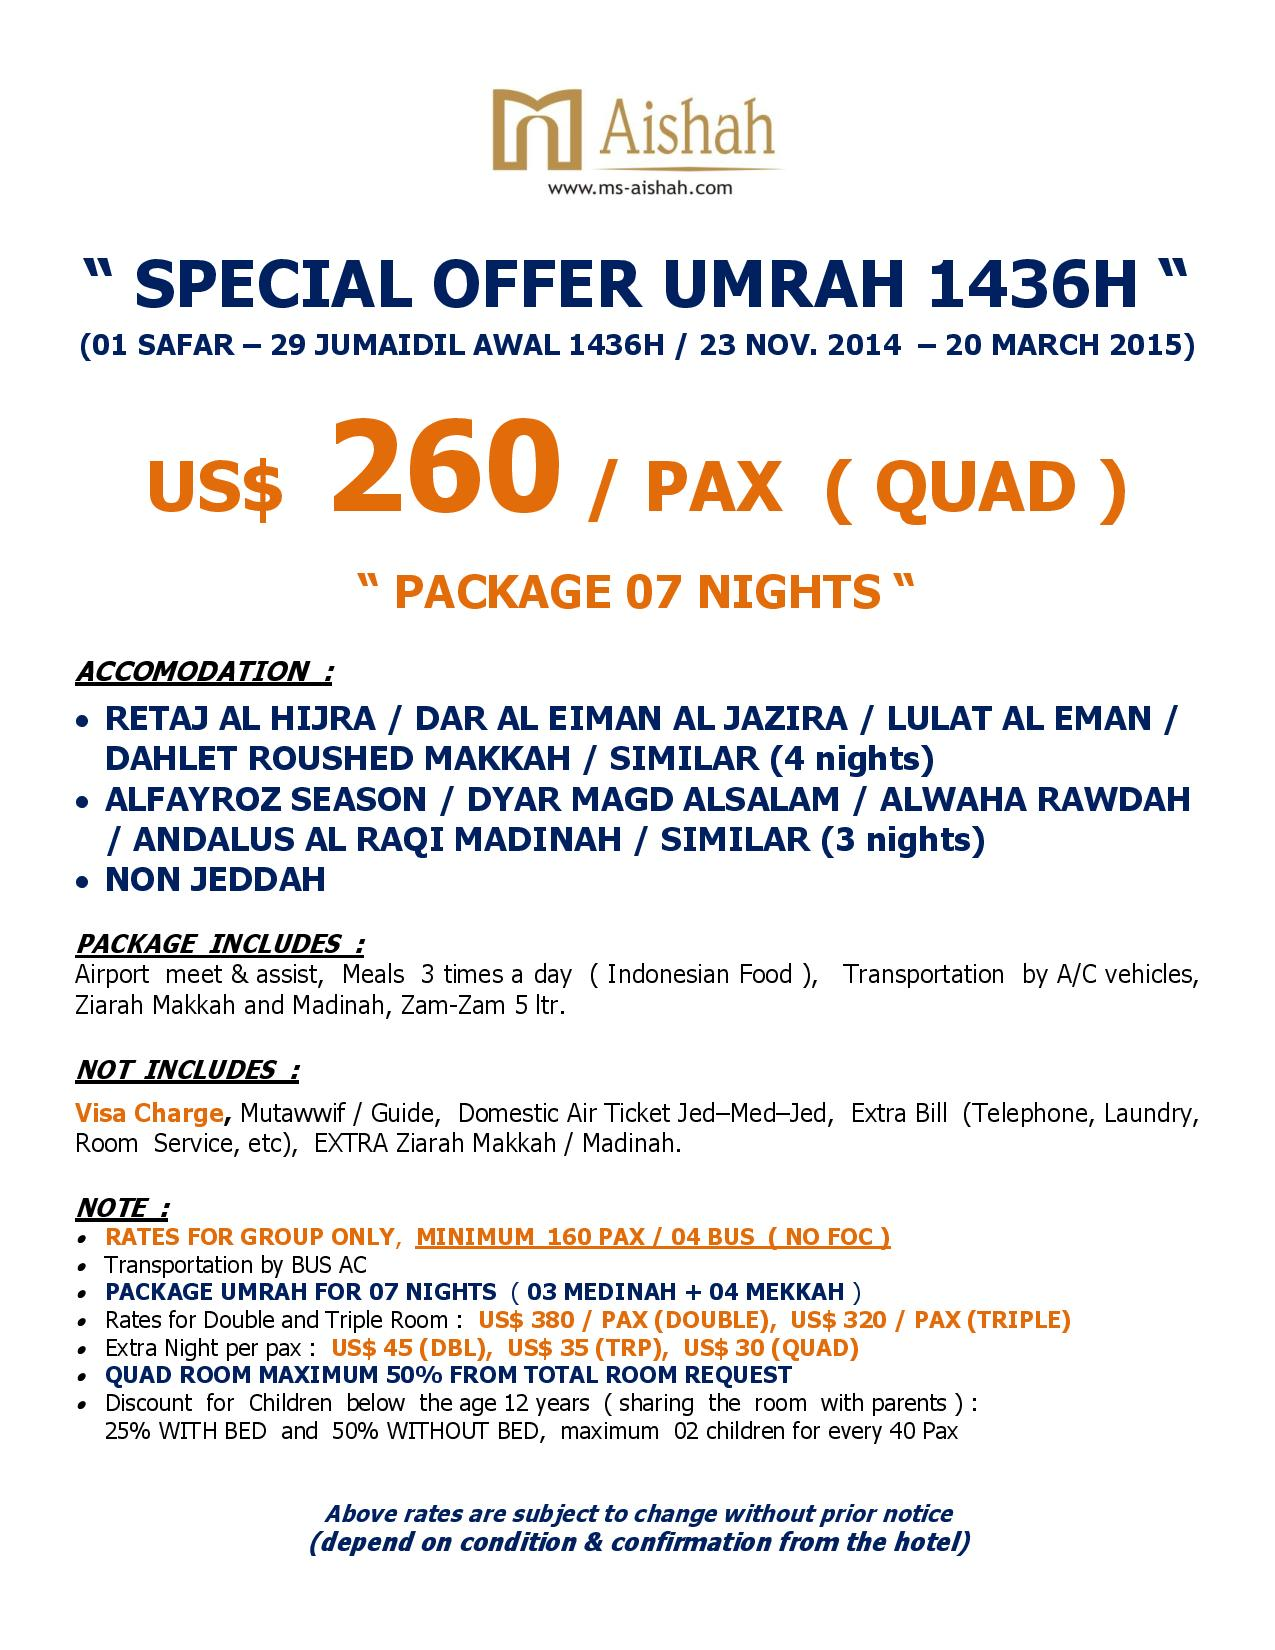 SPECIAL OFFER UMRAH 1436H SEASON 1-page-004